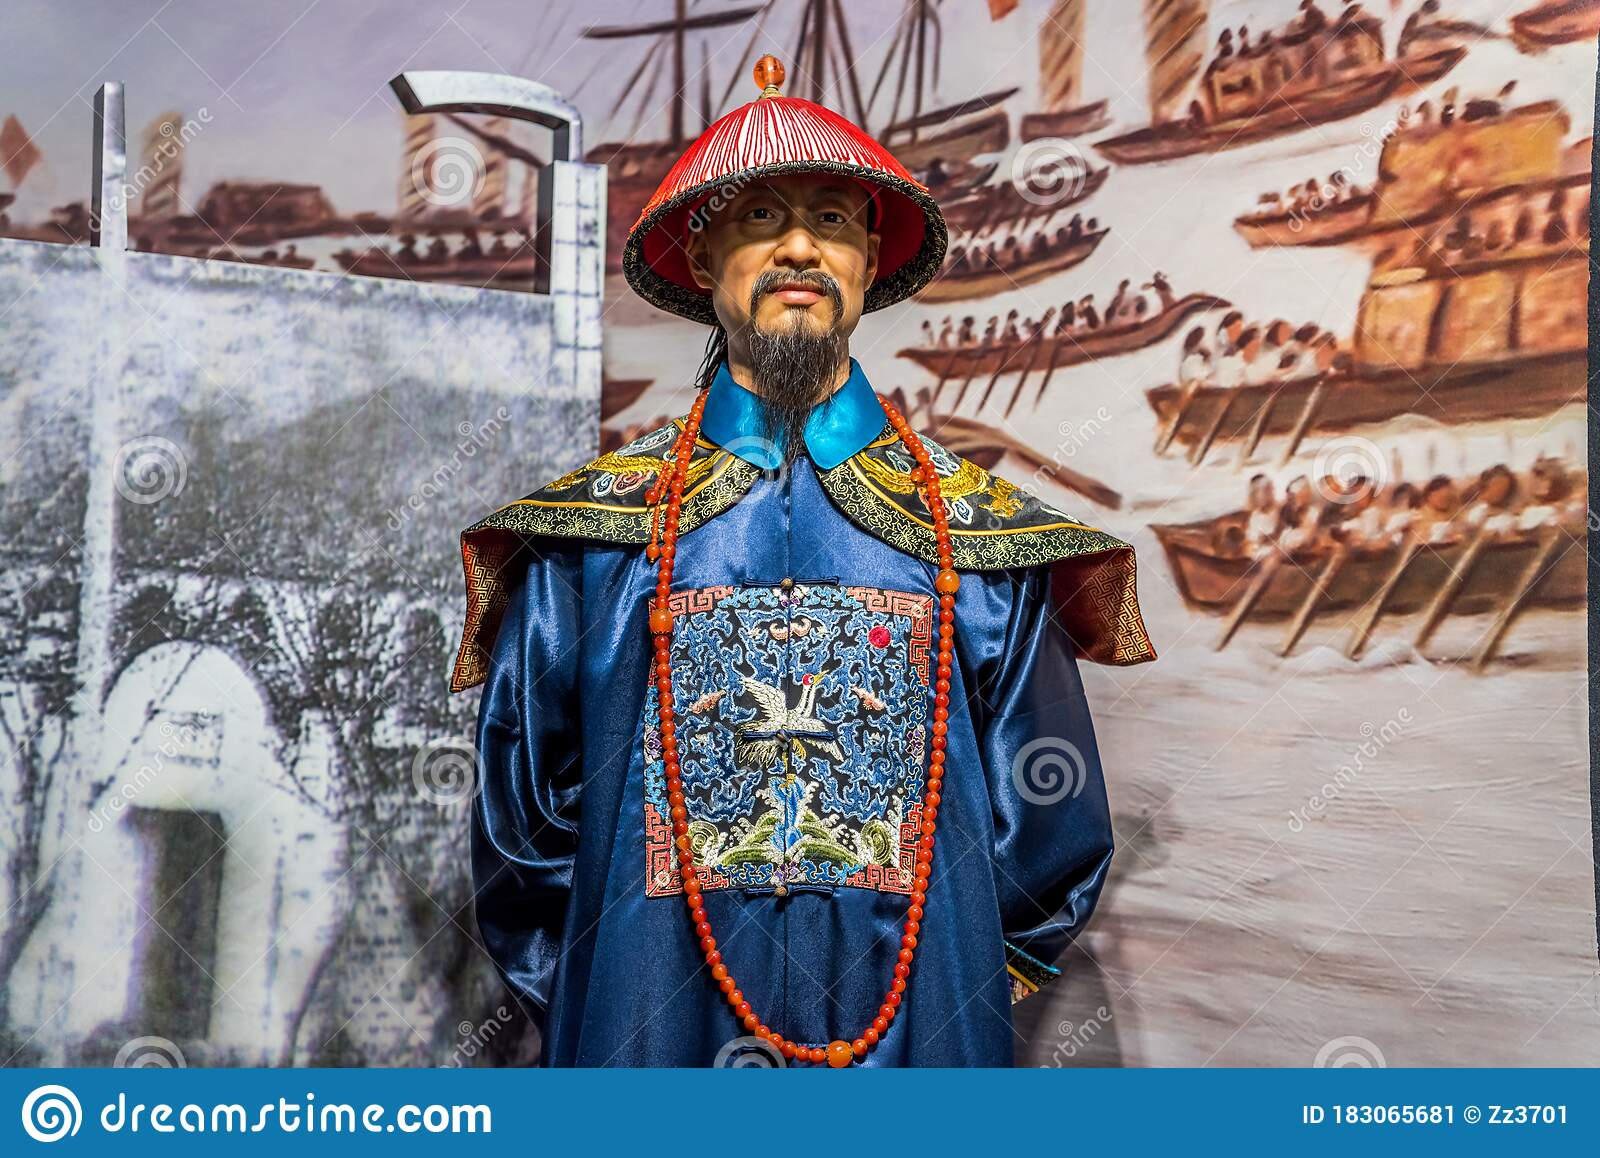 ancient-senior-chinese-officials-dressin